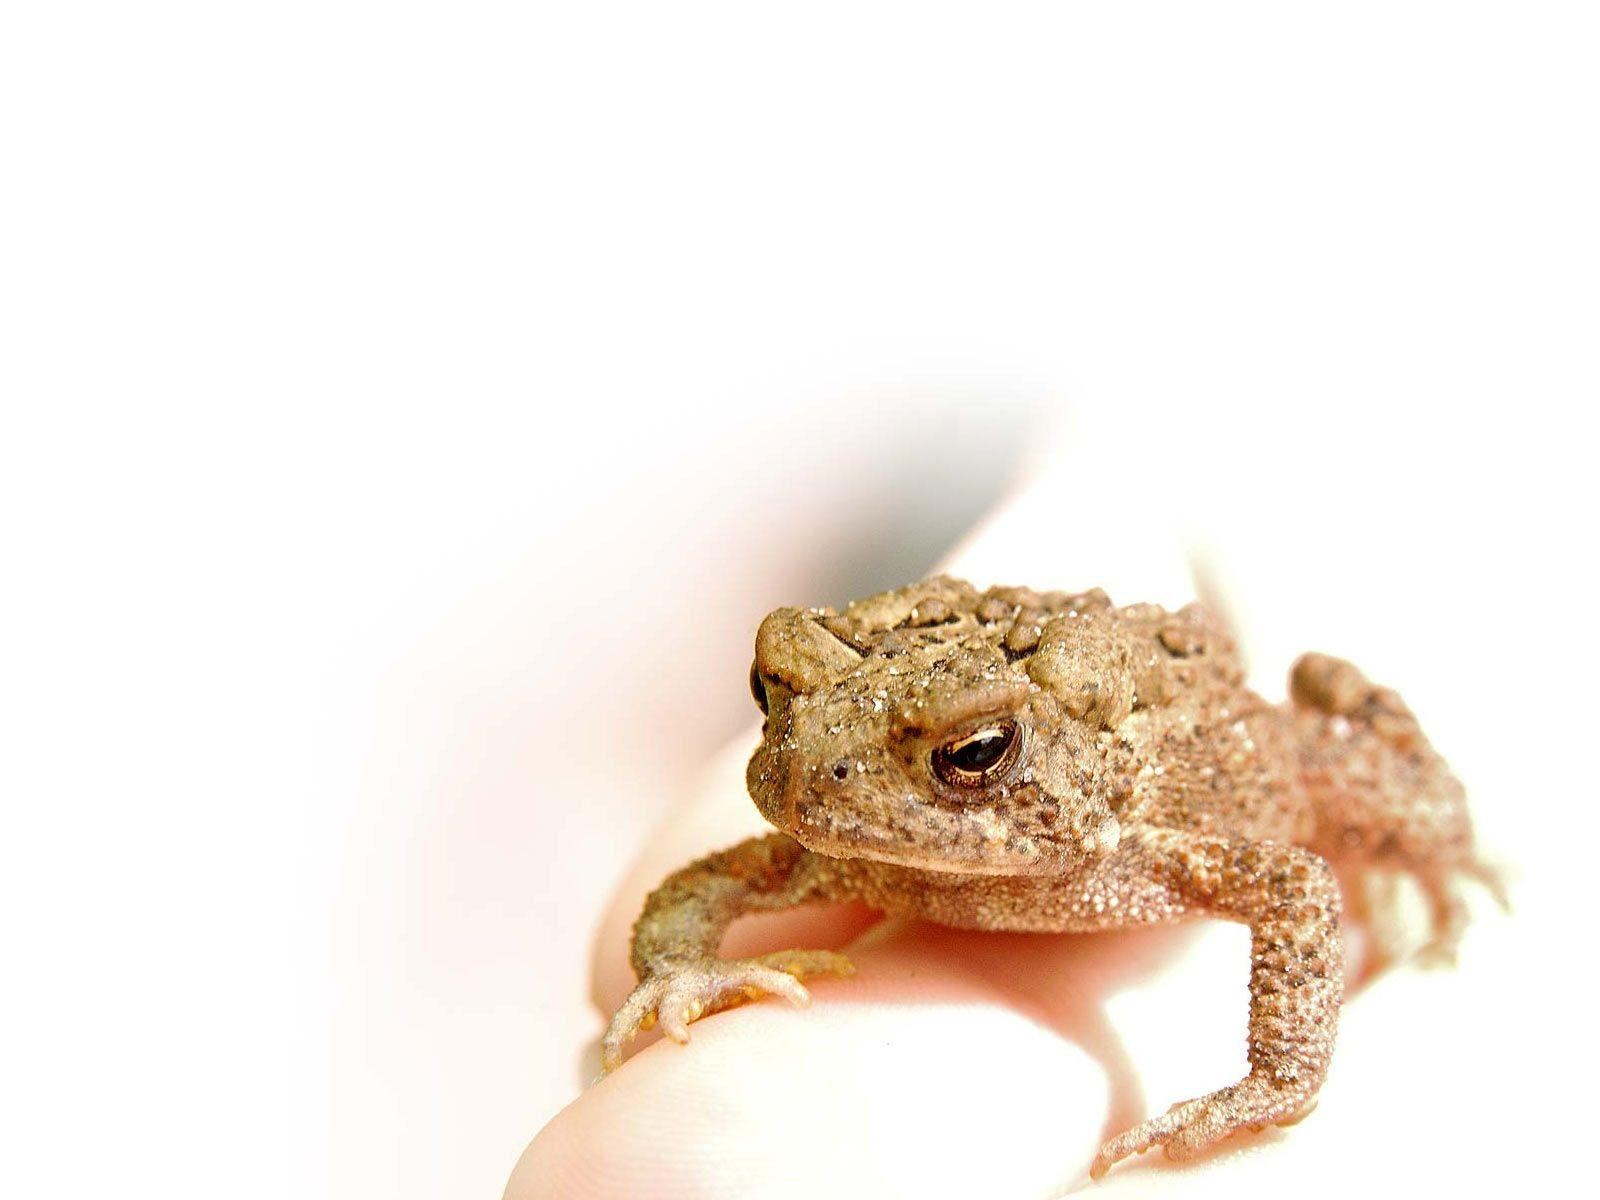 Desktop Wallpapers · Gallery · Animals · American toad